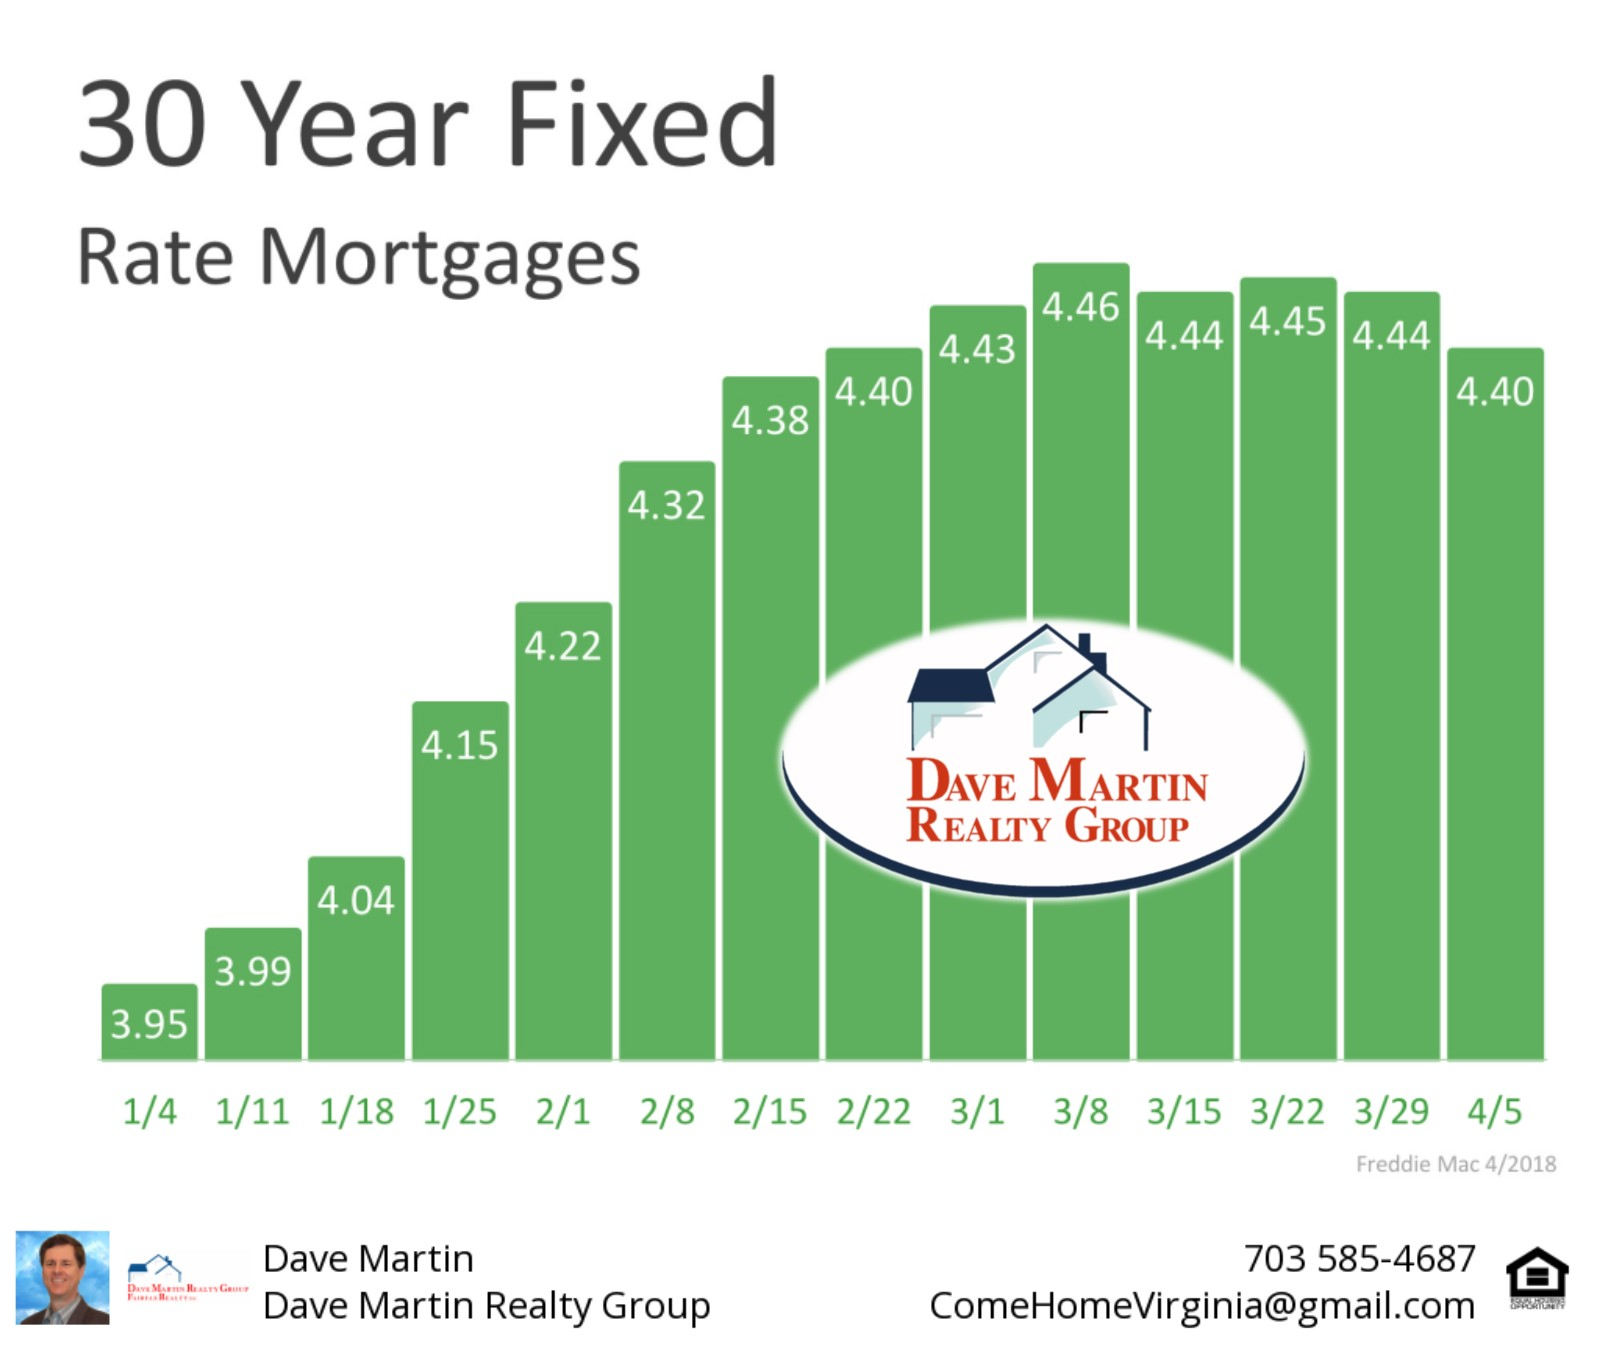 mortgage rates have begun to level off northern Virginia real estate buyer seller dave martin www.comehomevirginia.com